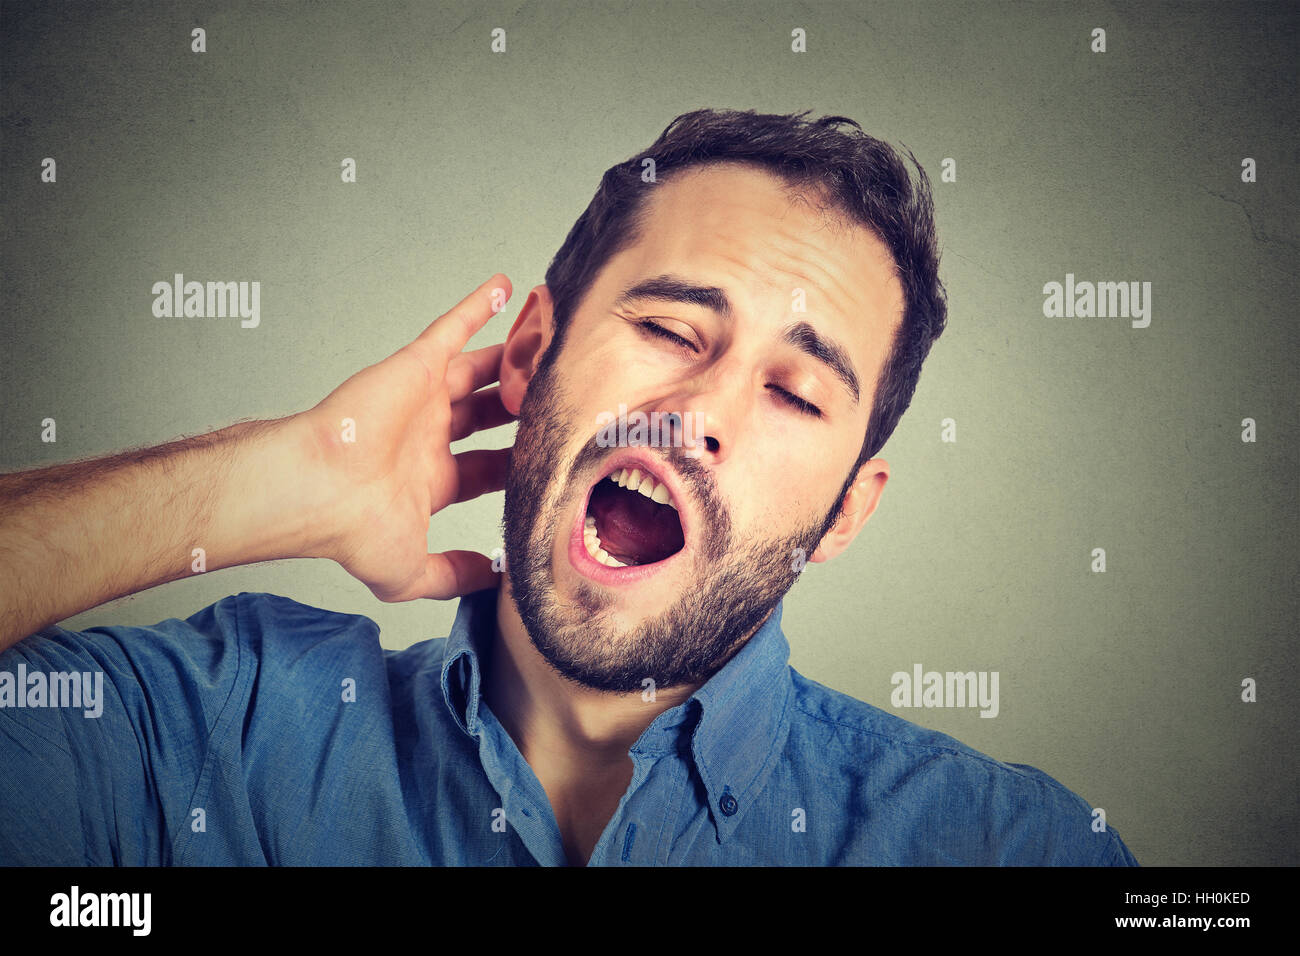 Young sleepy man yawning stretching arms back isolated on gray wall background. Sleep deprivation, burnout, laziness - Stock Image